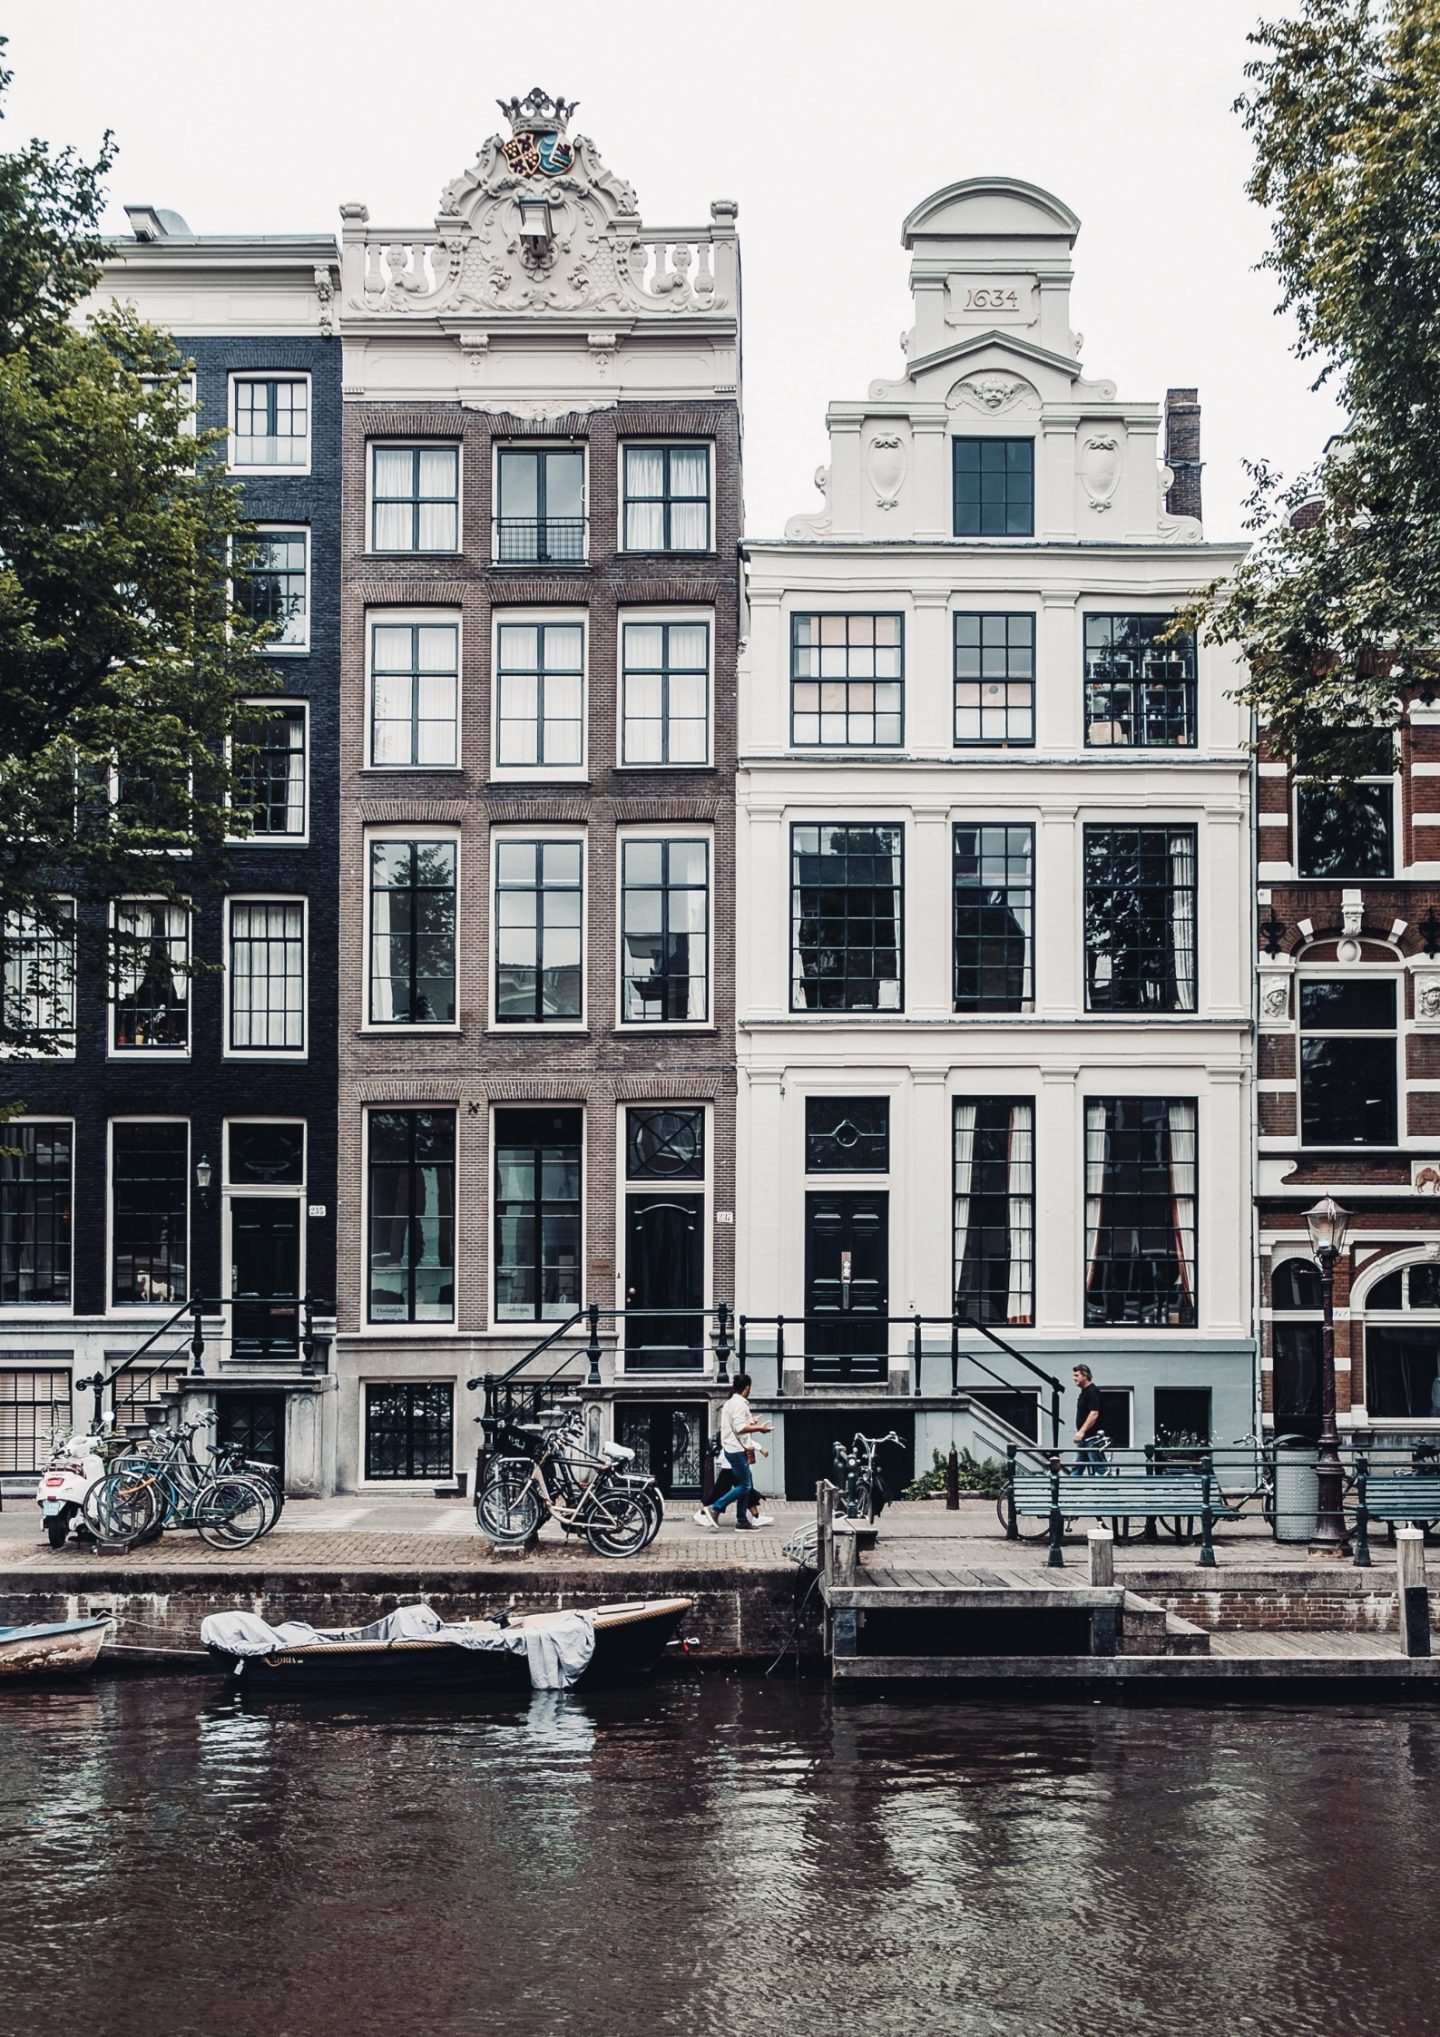 A FIRST TIMERS GUIDE TO AMSTERDAM